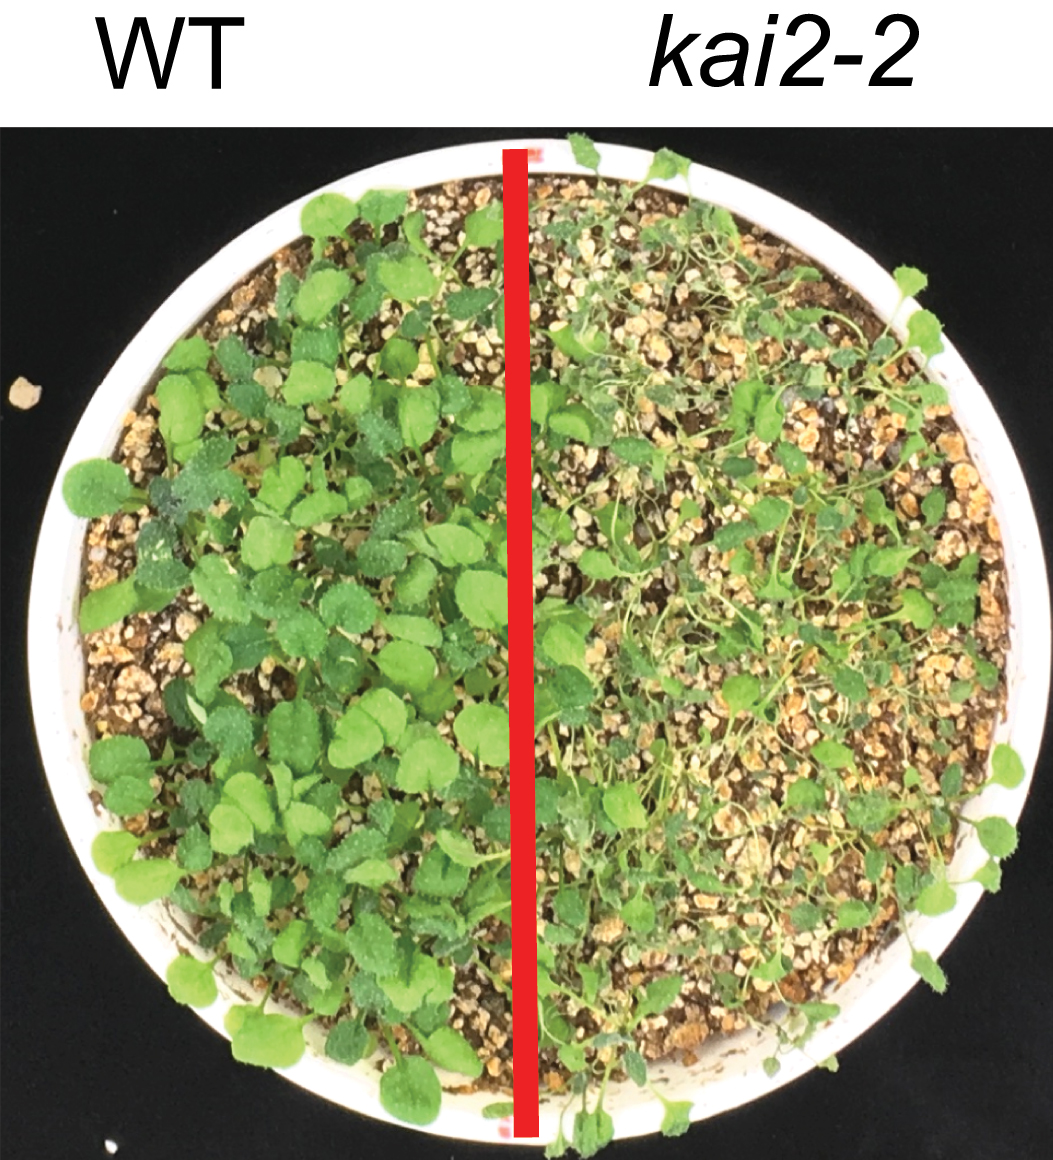 Photo showing wildtype and kai2 mutant plants grown in the same pot for 14 days without water.